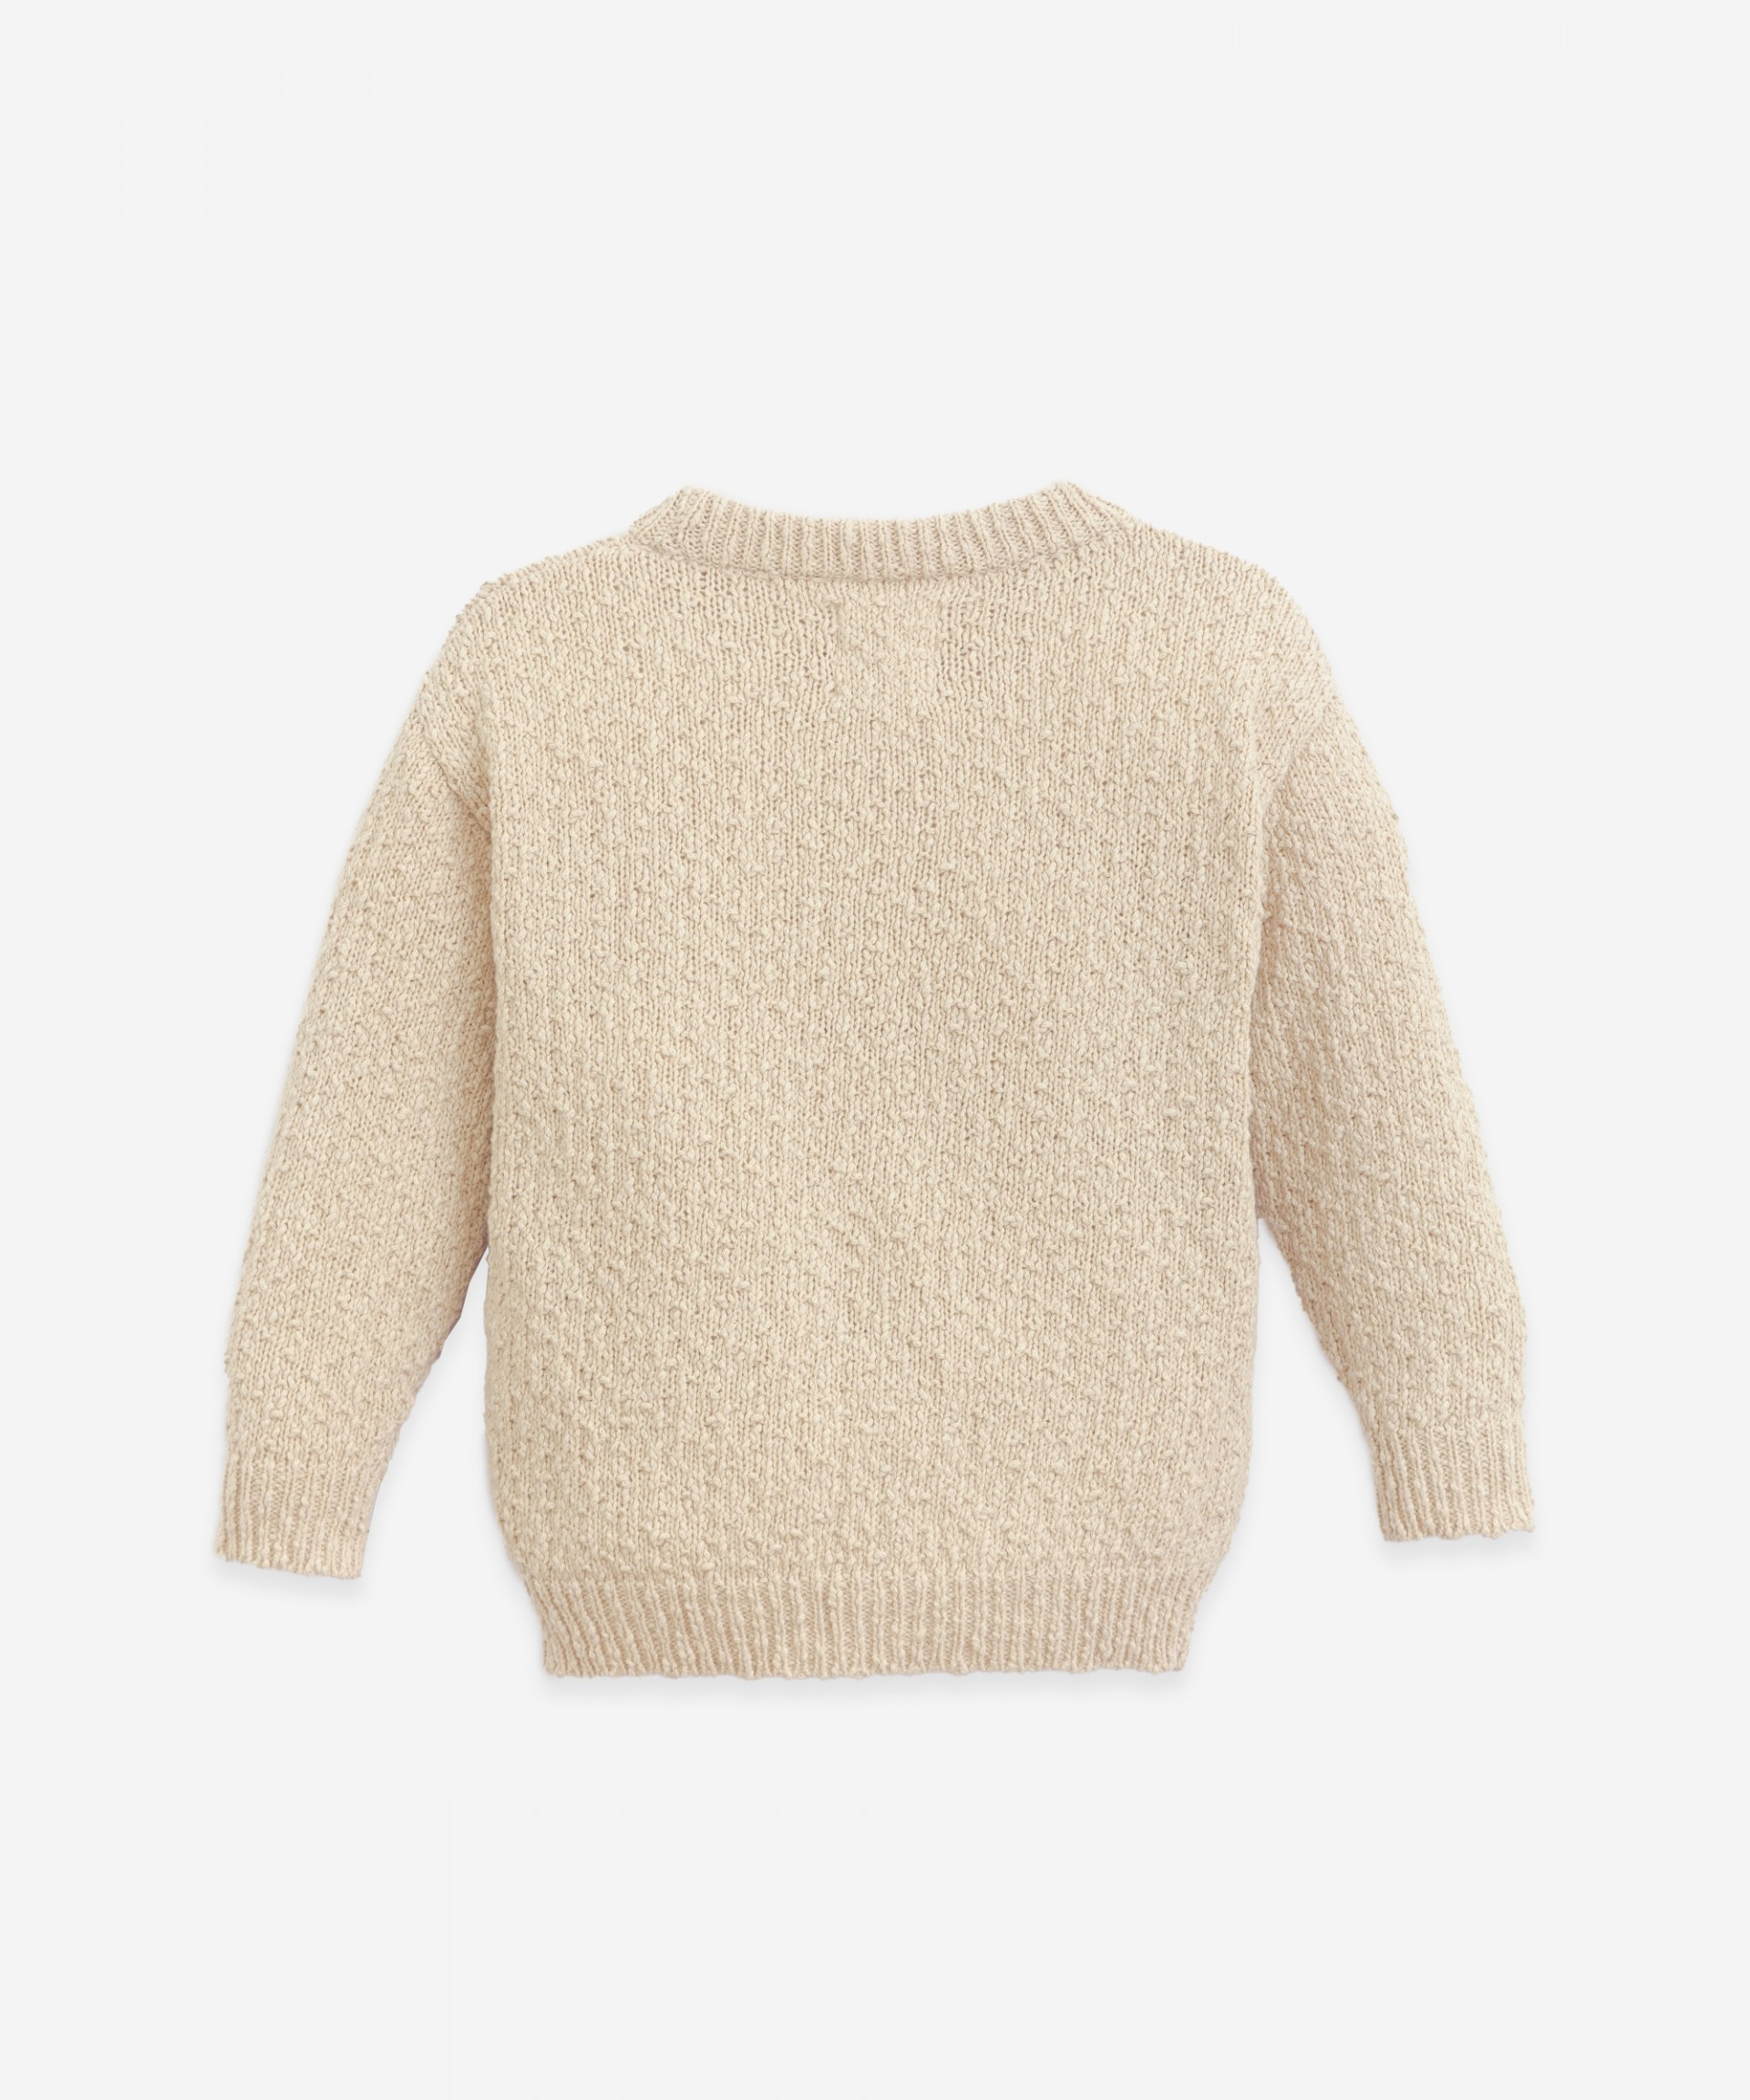 Cotton and linen sweater   Botany